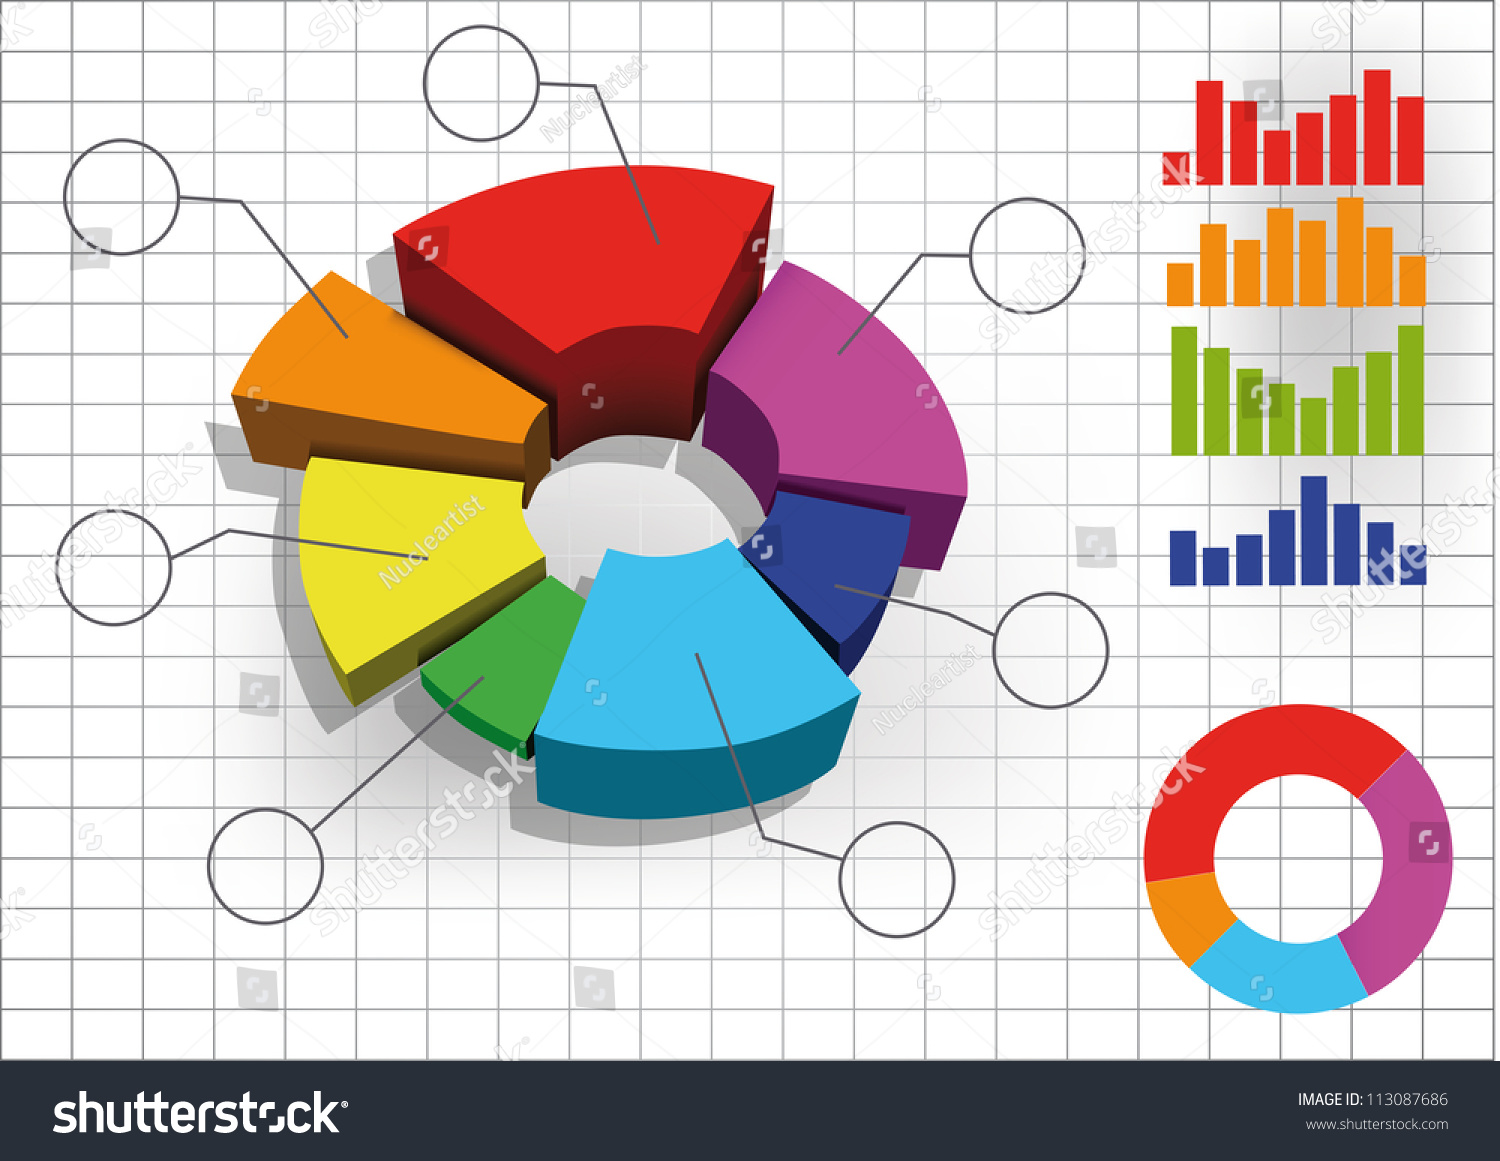 Color 3d pie chart graph vector stock vector 113087686 shutterstock color 3d pie chart graph vector illustration nvjuhfo Choice Image